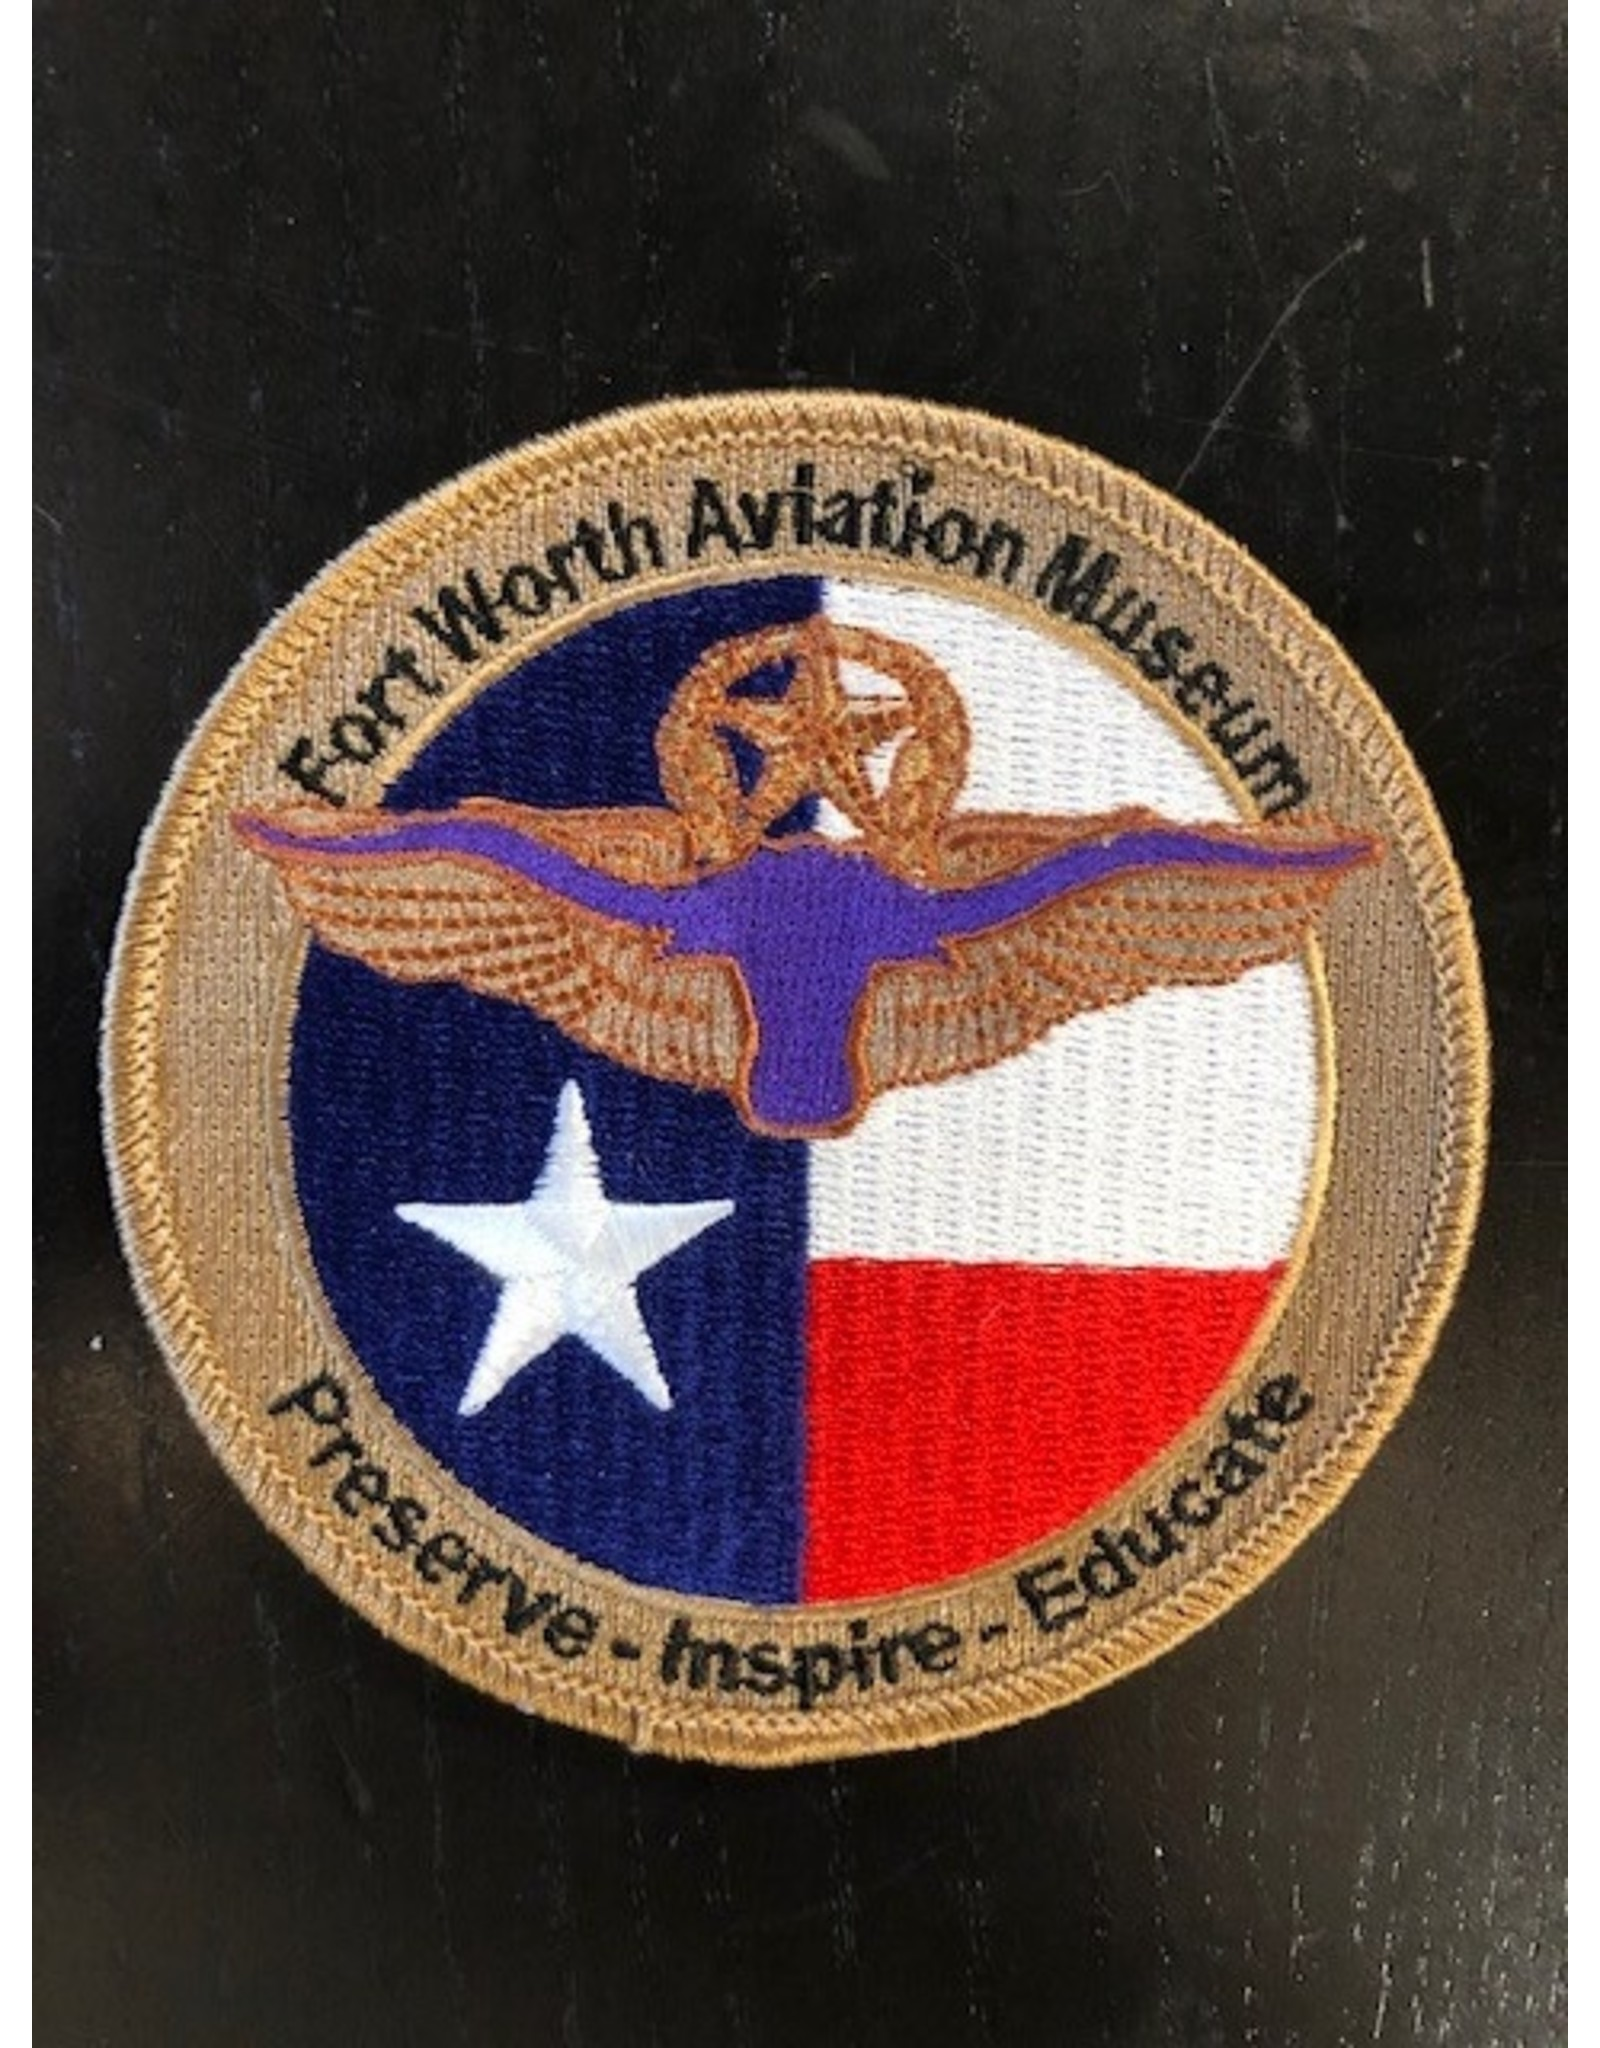 FWAM Fort Worth Aviation Museum (6), patch